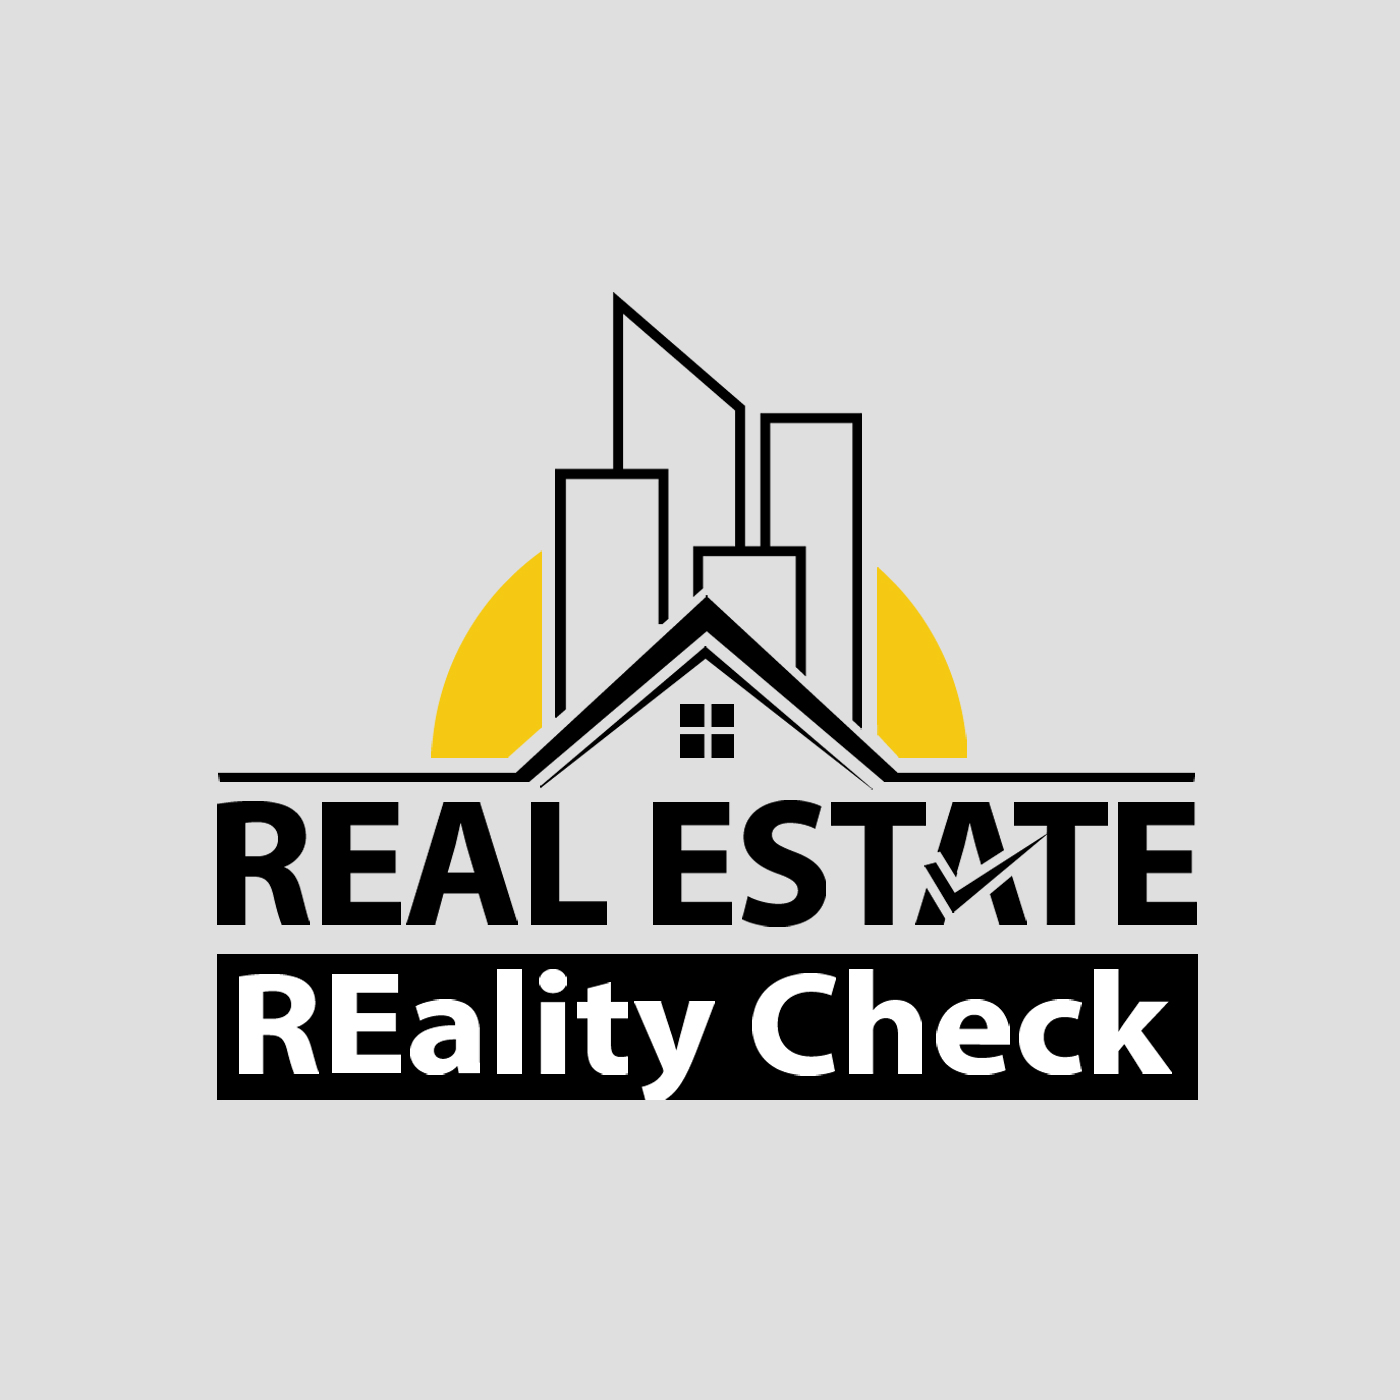 Real Estate REality Check   Real Estate & Business Career Success Education and Training